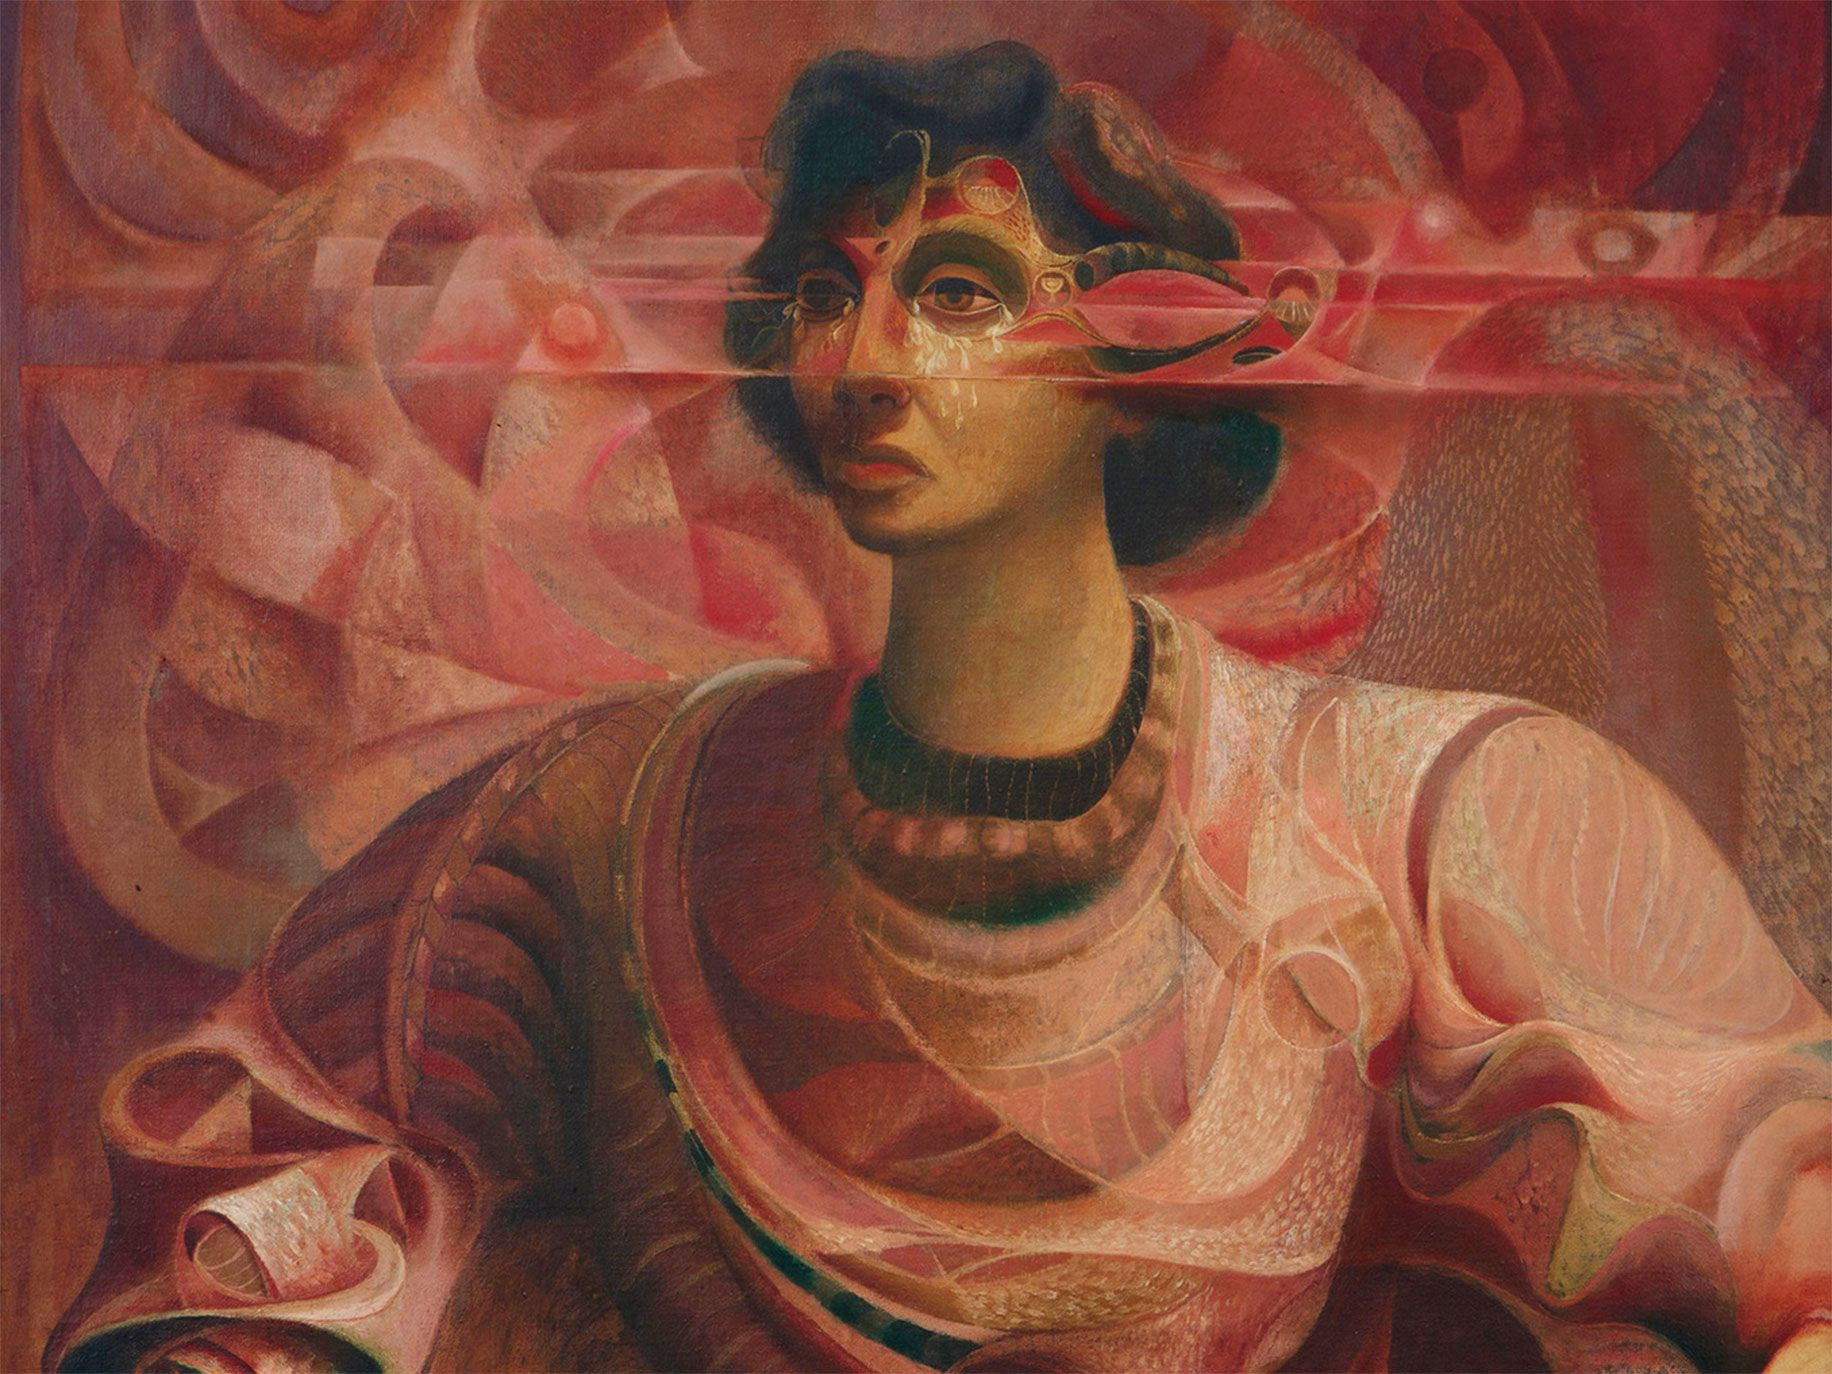 Detail of painter Leo Kenney's The Priestess.